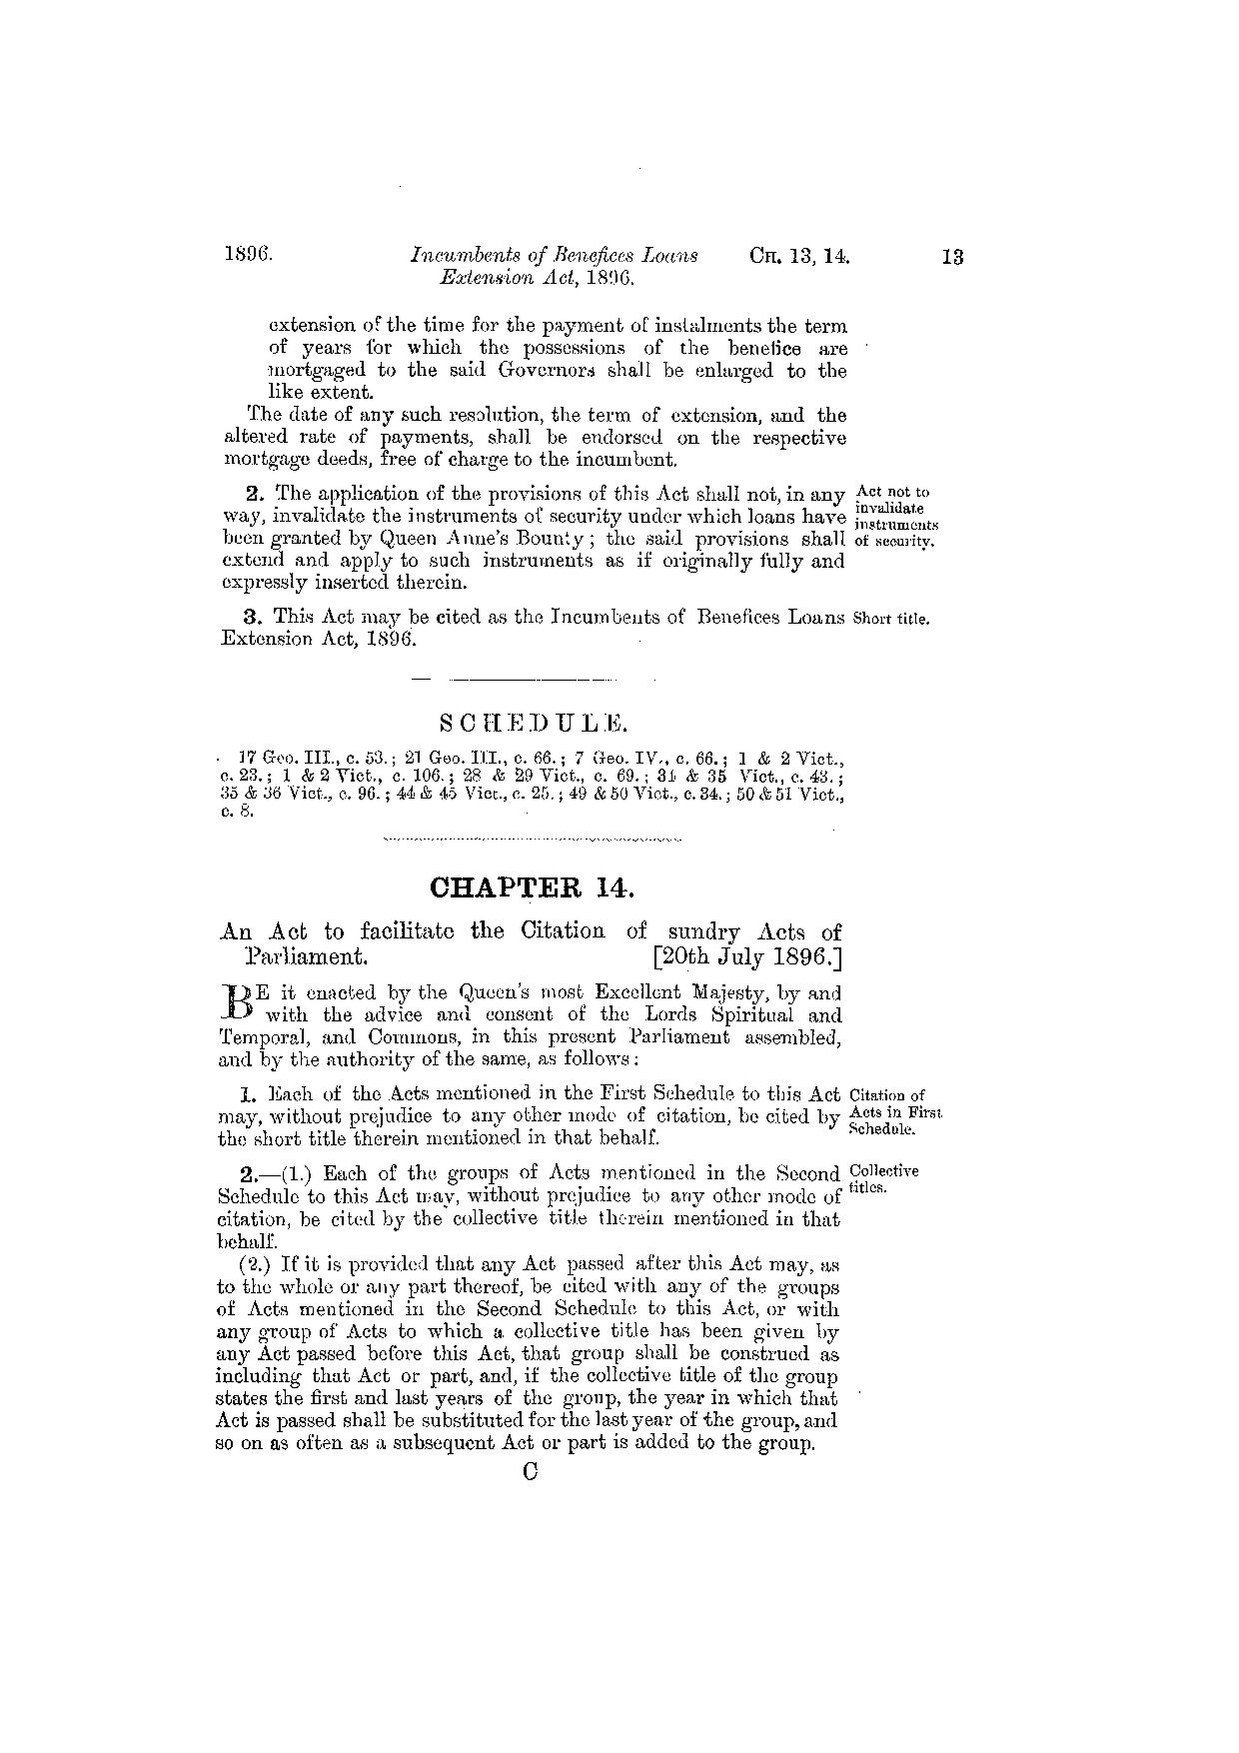 Fileshort Titles Act 1896ukpga 18960014 Enpdf Wikimedia Commons Original File 1239 X 1754 Pixels Size 211 Mb Mime